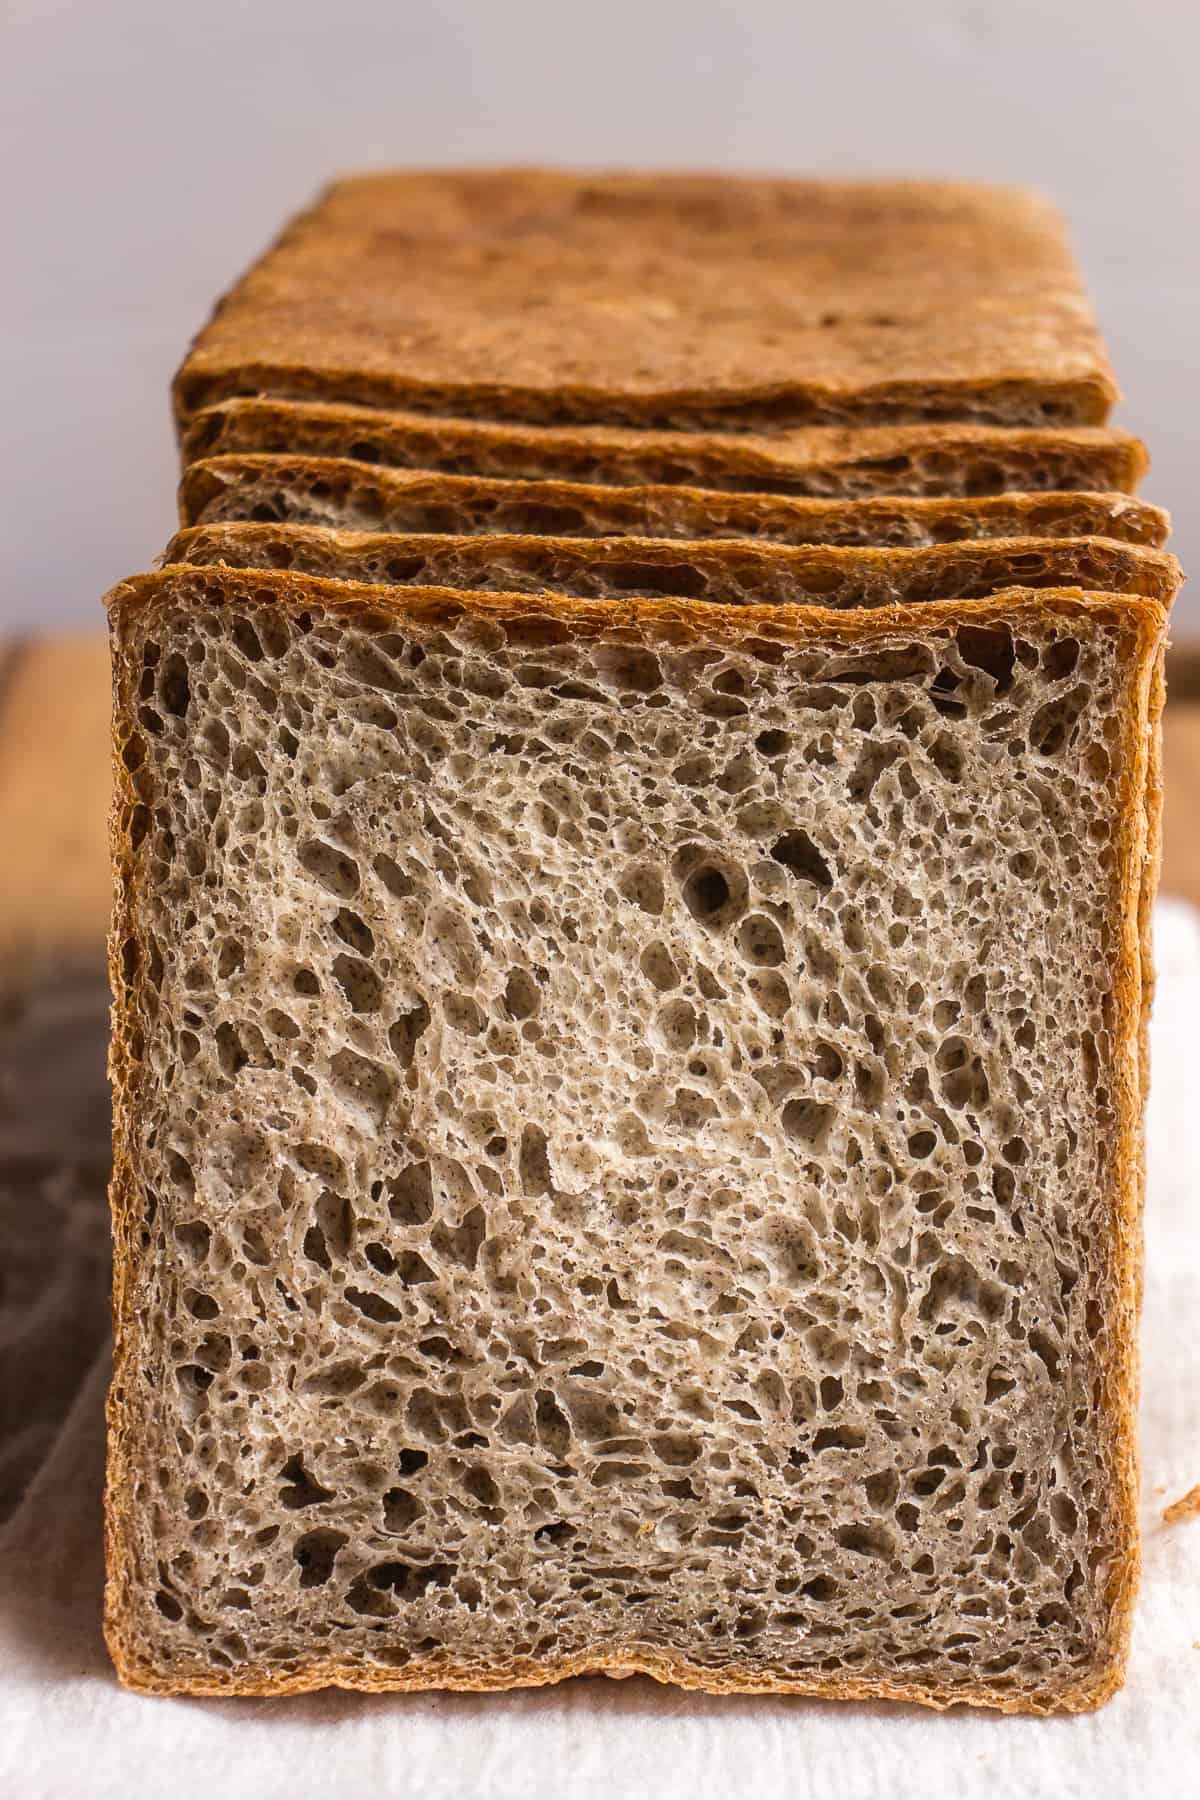 Slices of healthy buckwheat bread